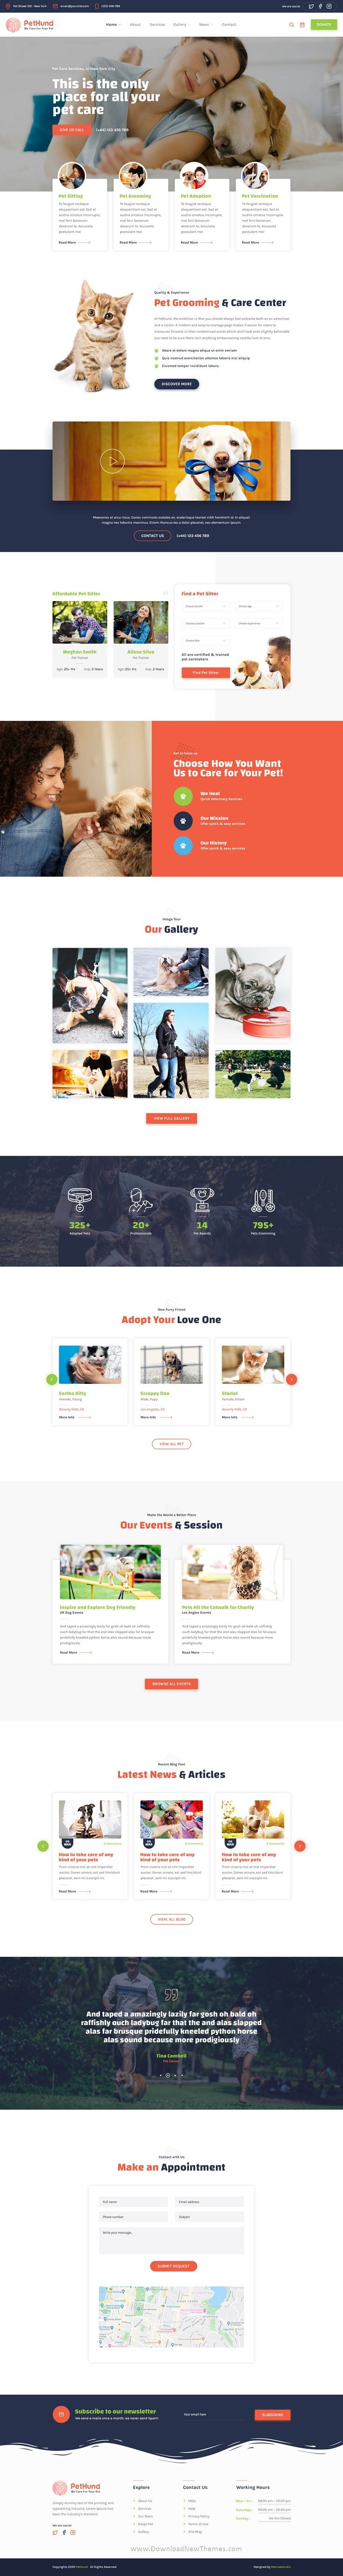 PetHund Pet Shop and Veterinary PSD Template in 2020